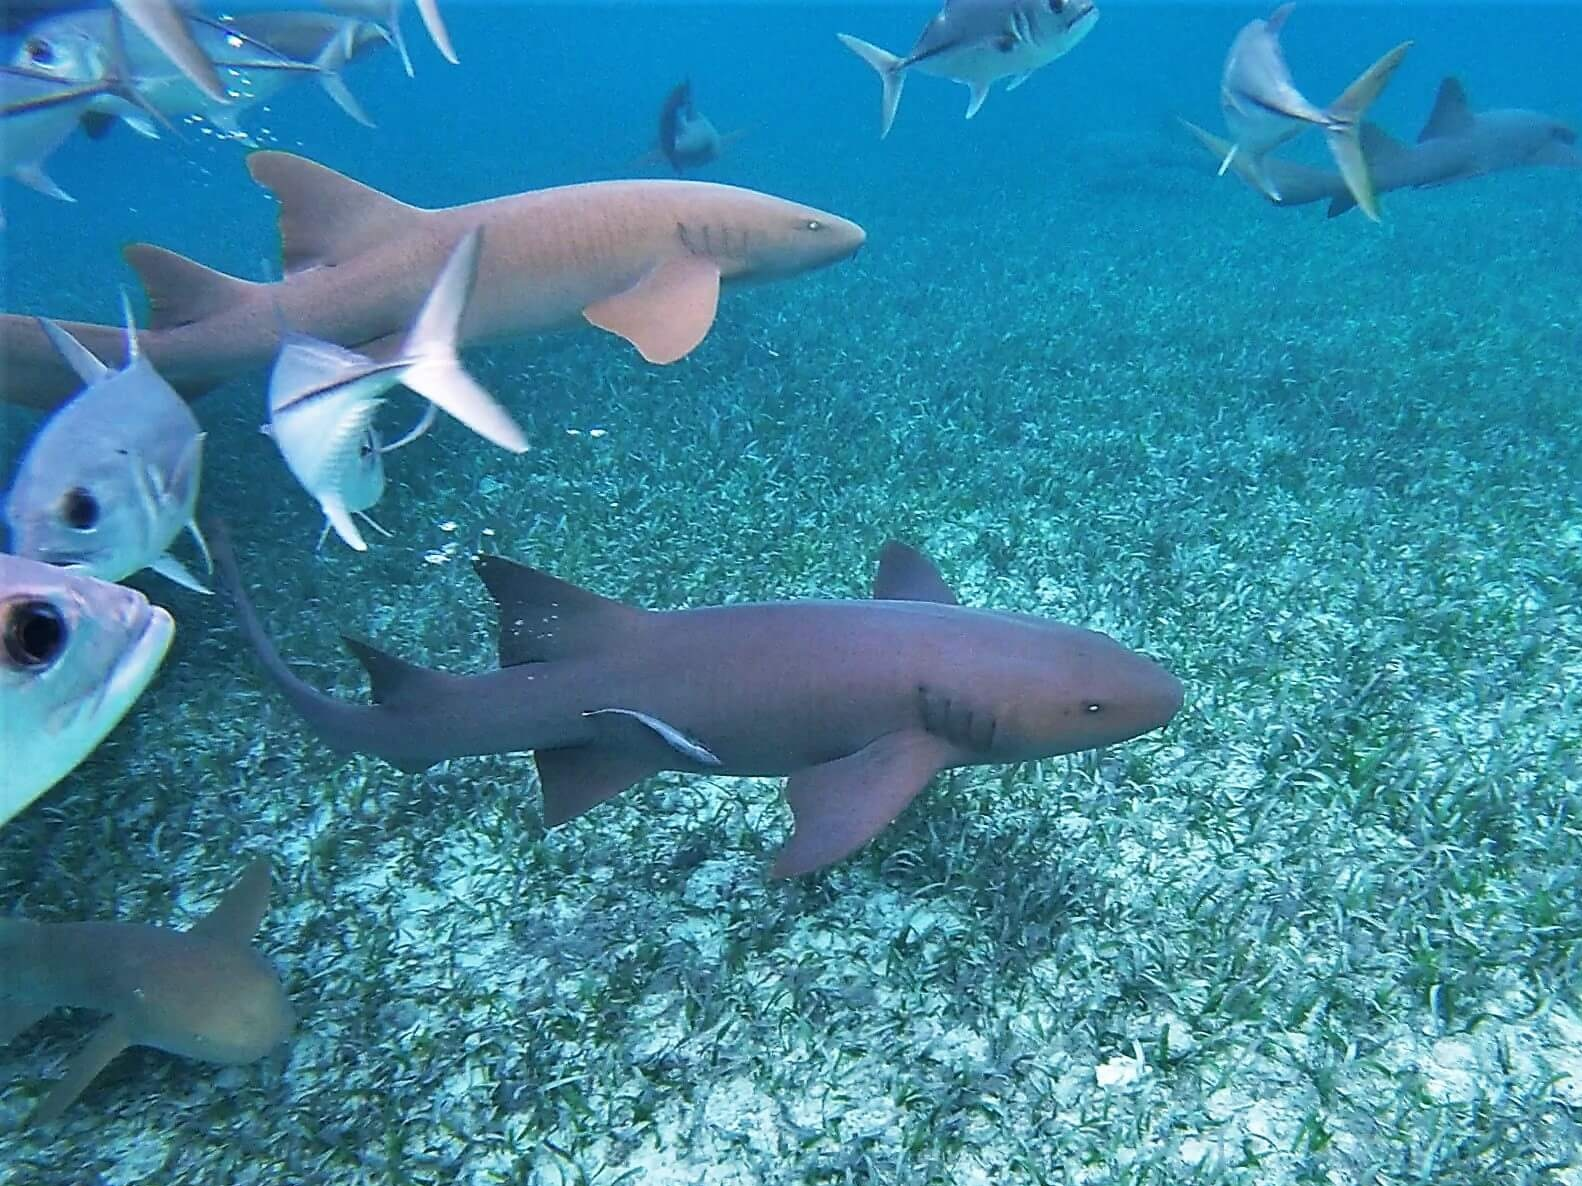 Belizean barrier reef Nurse Sharks on the prowl. Scuba diving at Shark-Ray Alley, Belize.